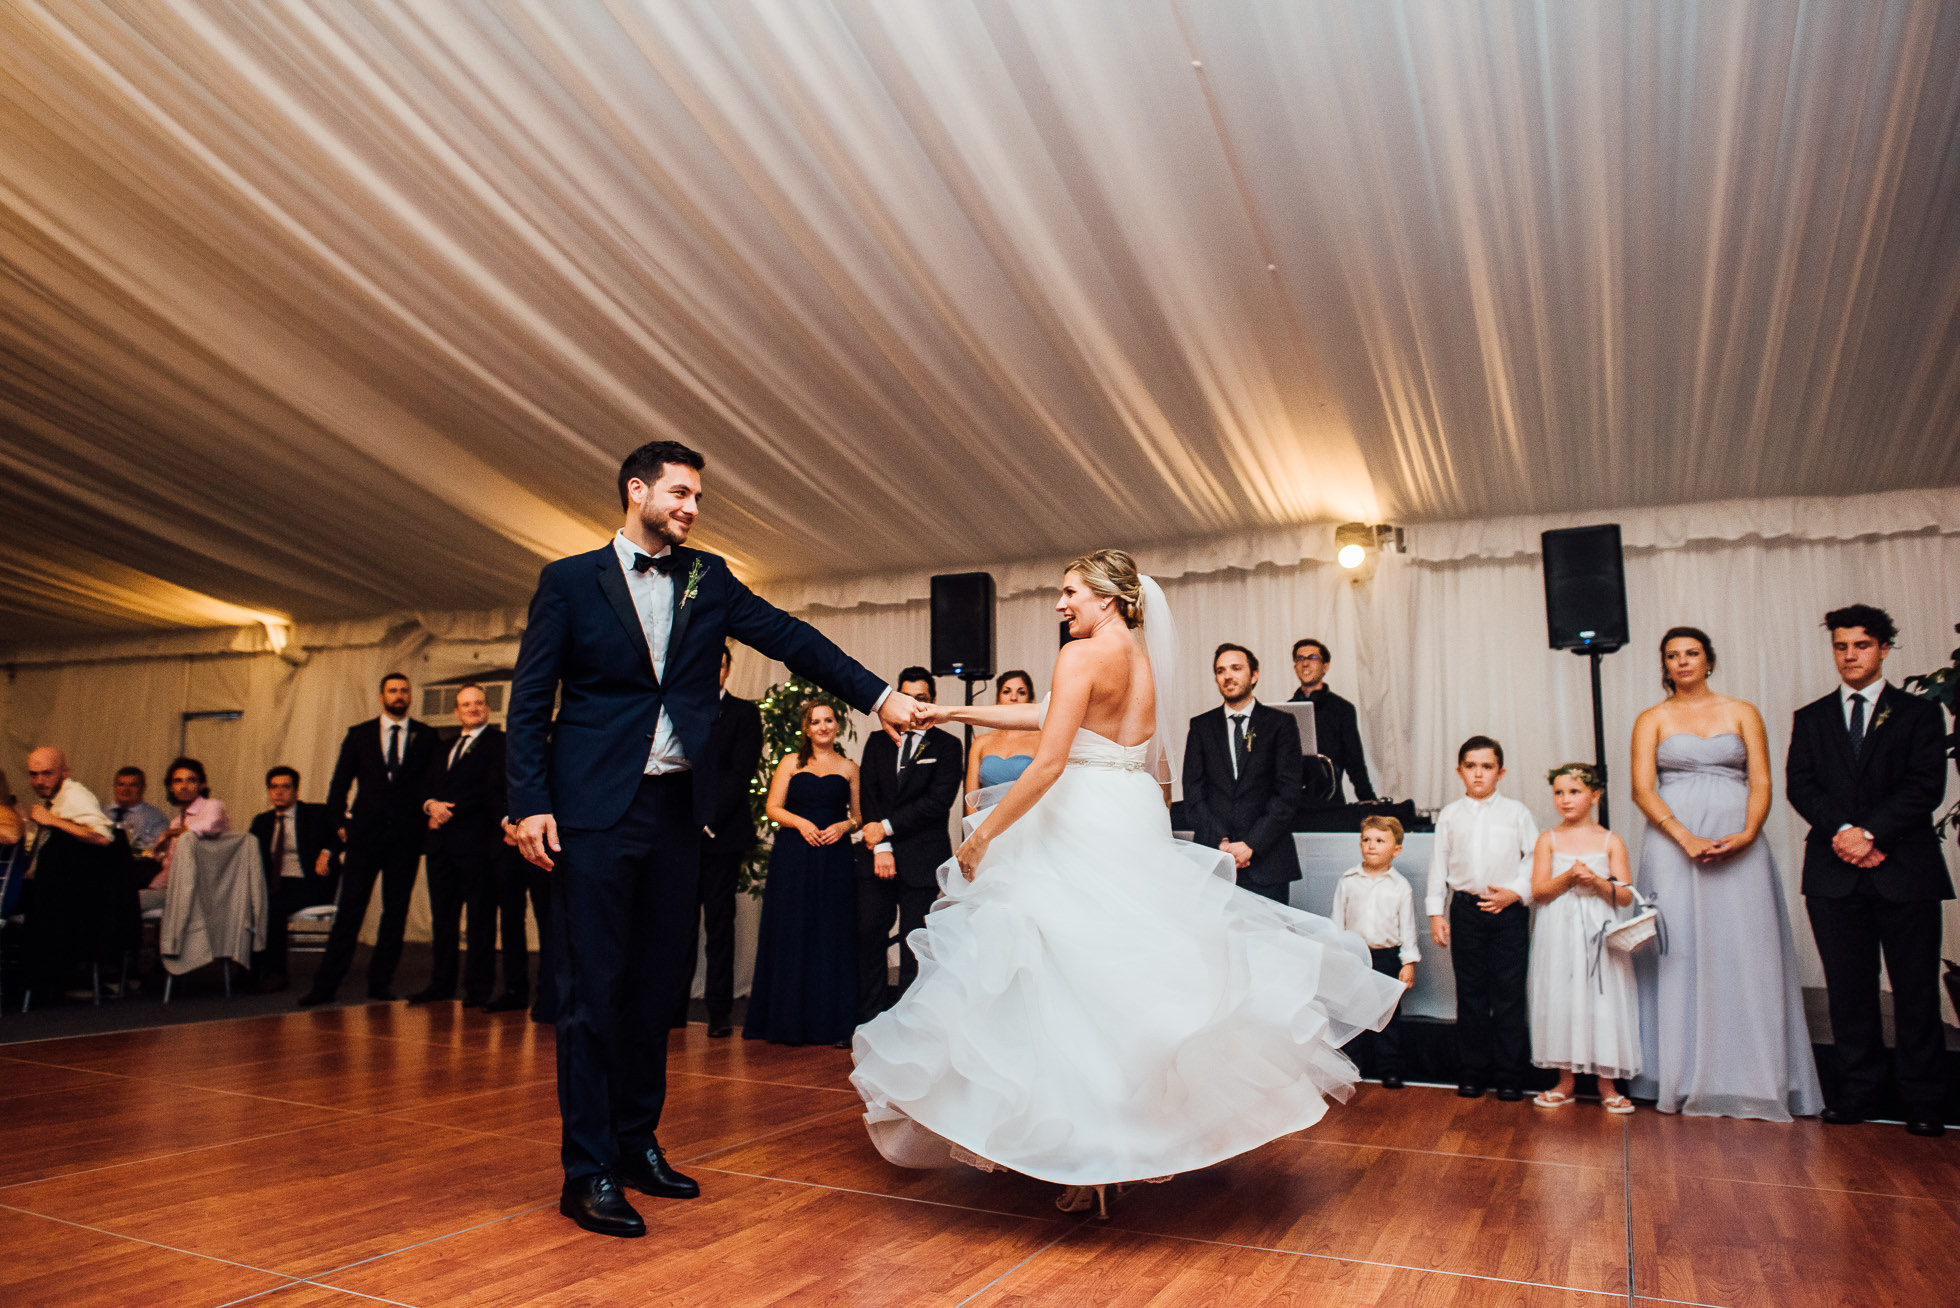 bride and groom first dance at lyndhurst castle wedding photographed by traverse the tides-2